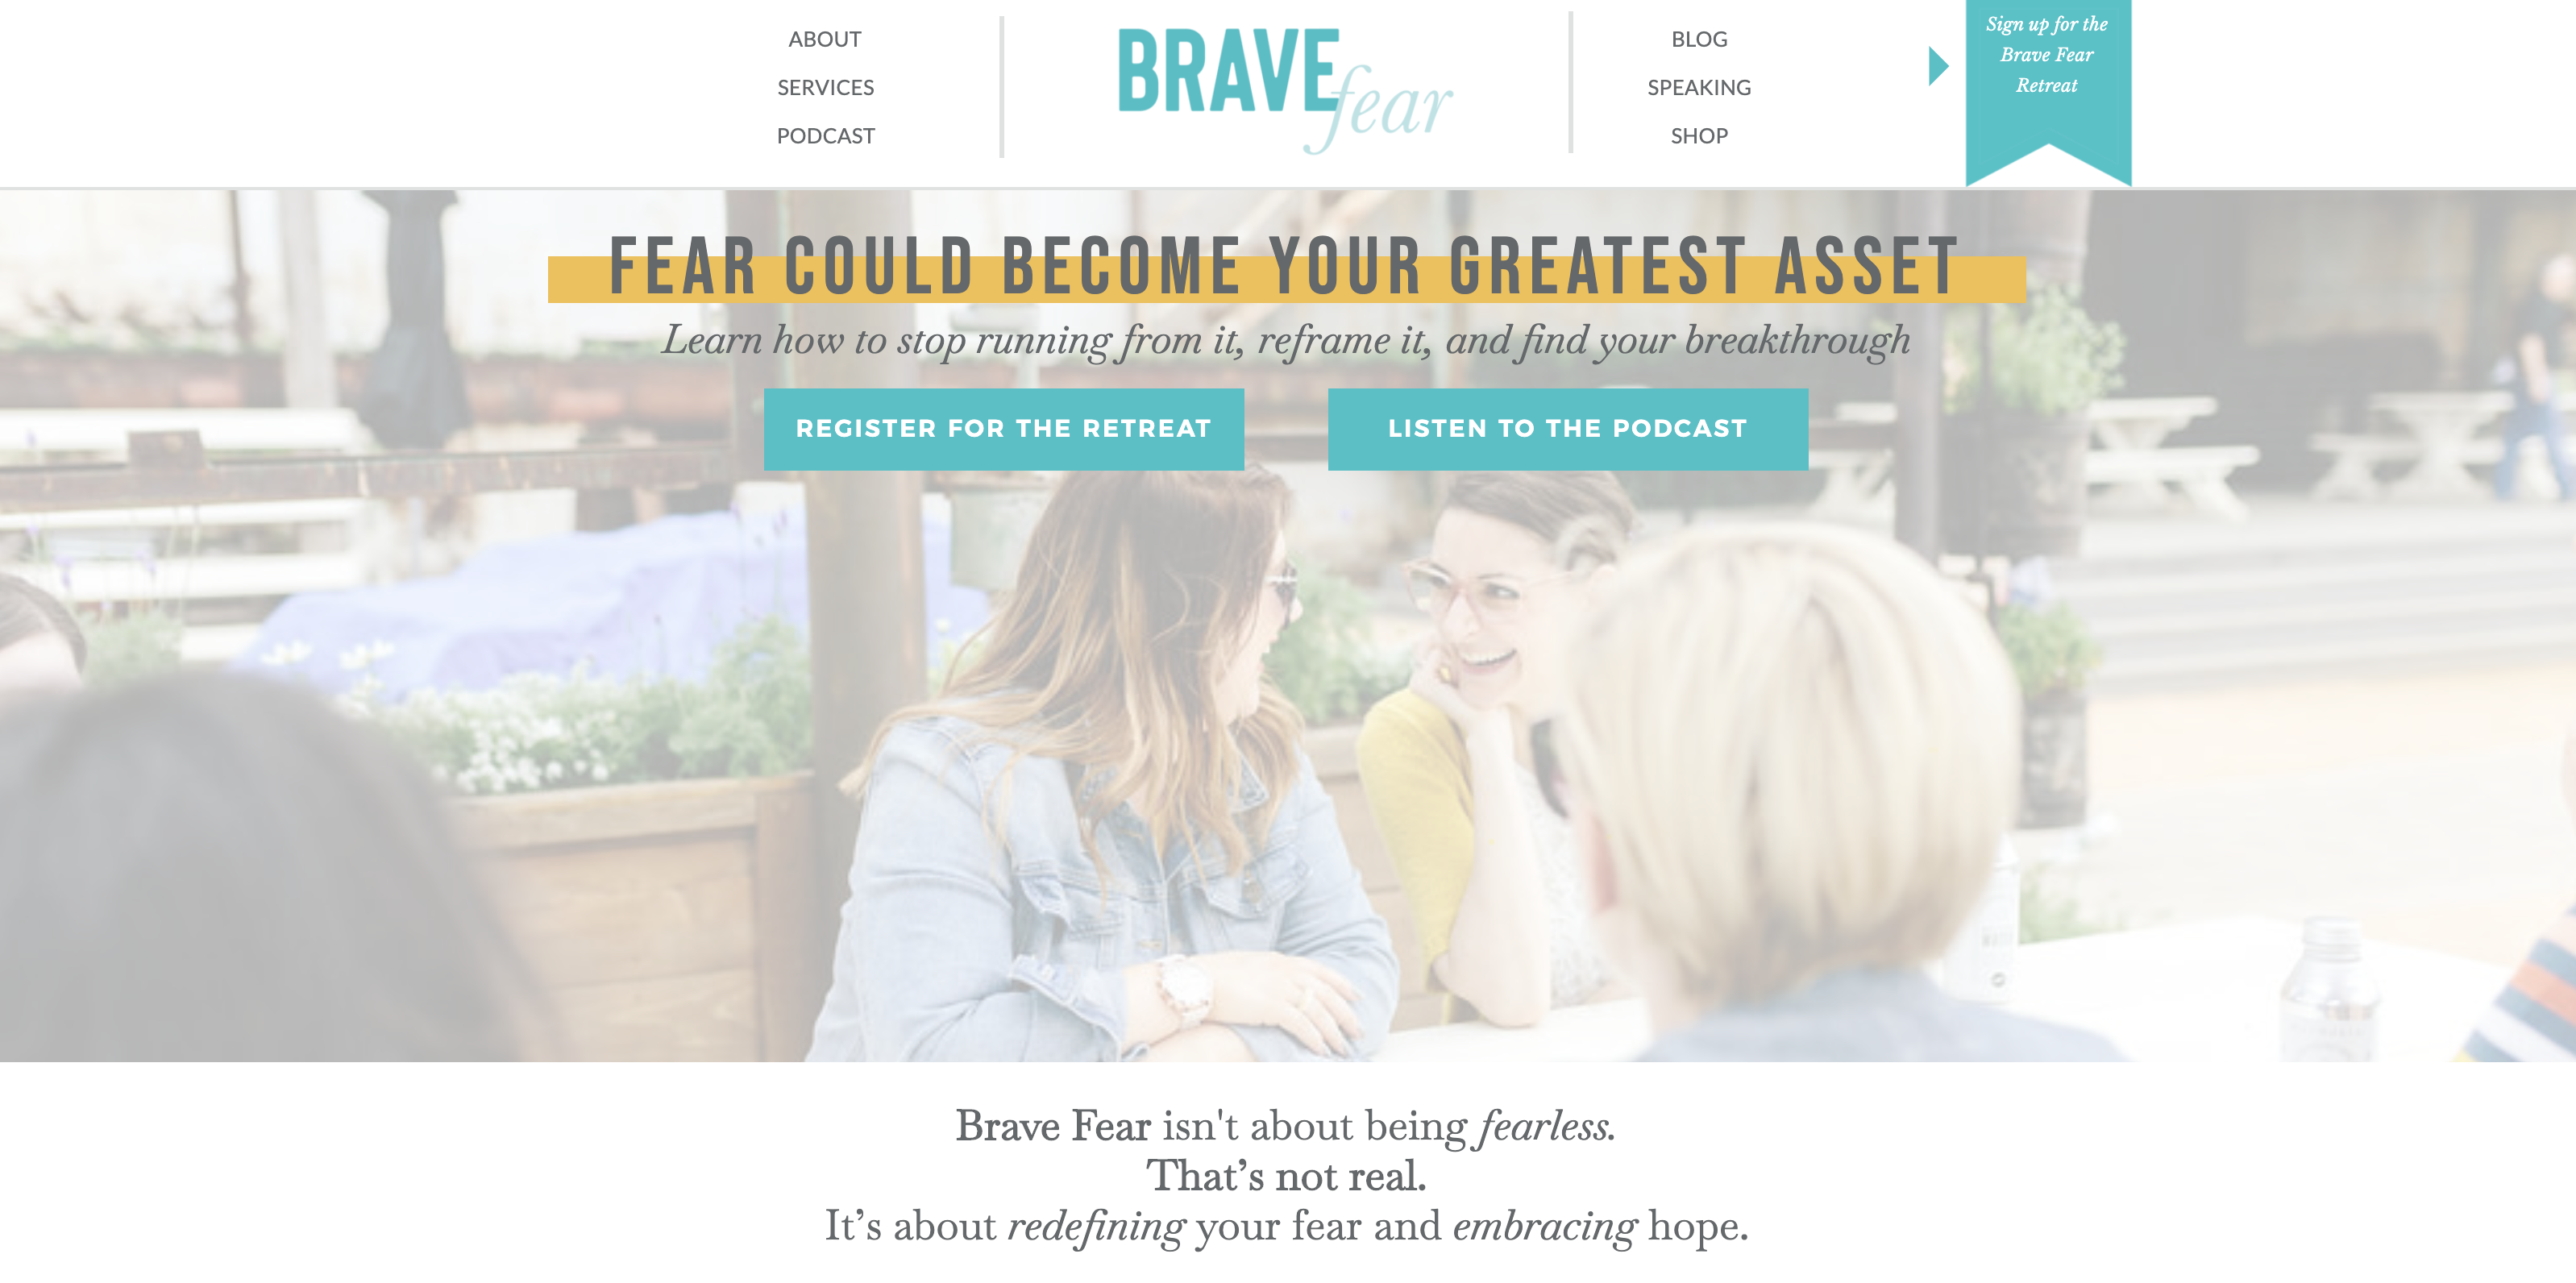 brianne wik brave fear website